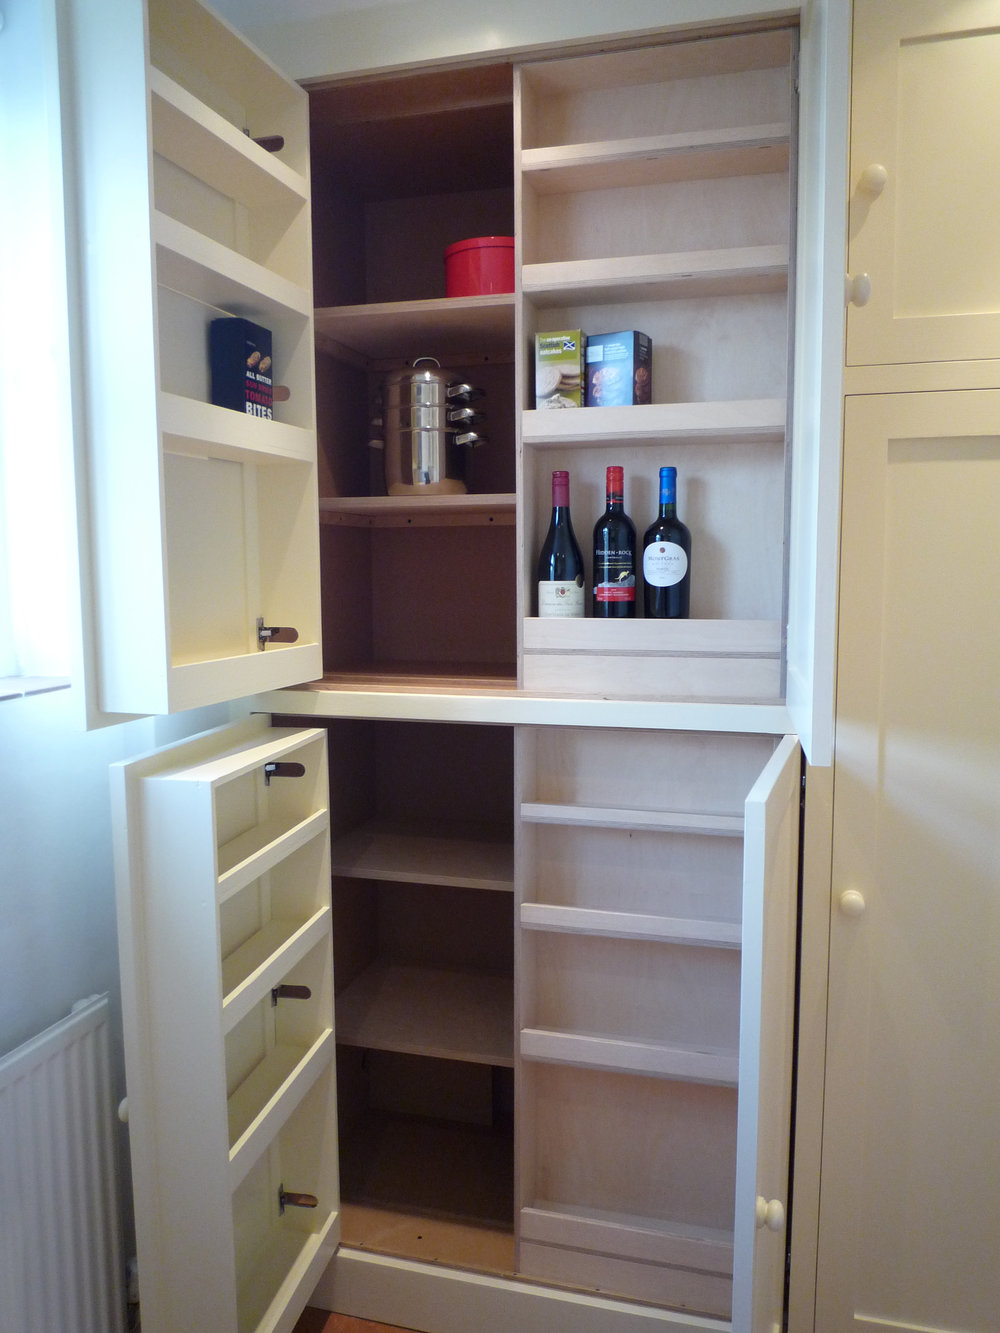 Utility room larder cupboard with door storage and sliding shelves